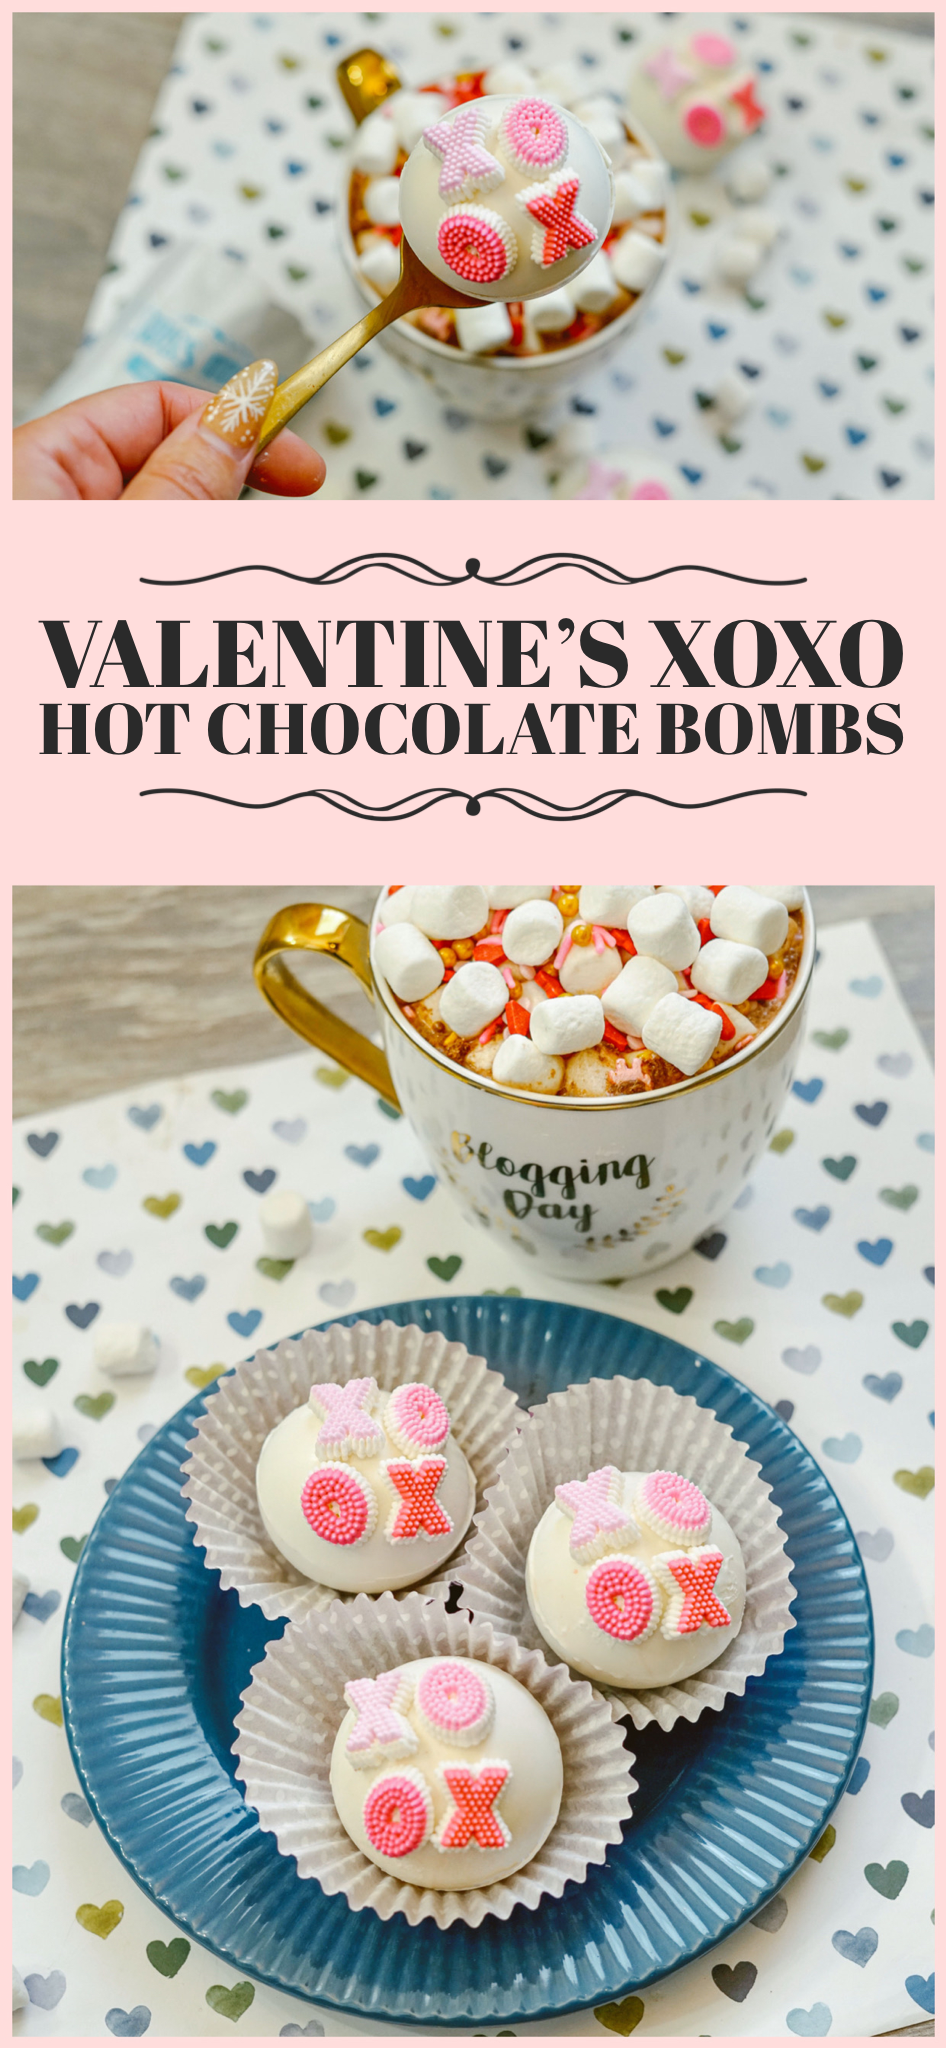 Valentine's XoXo Hot Chocolate Bombs